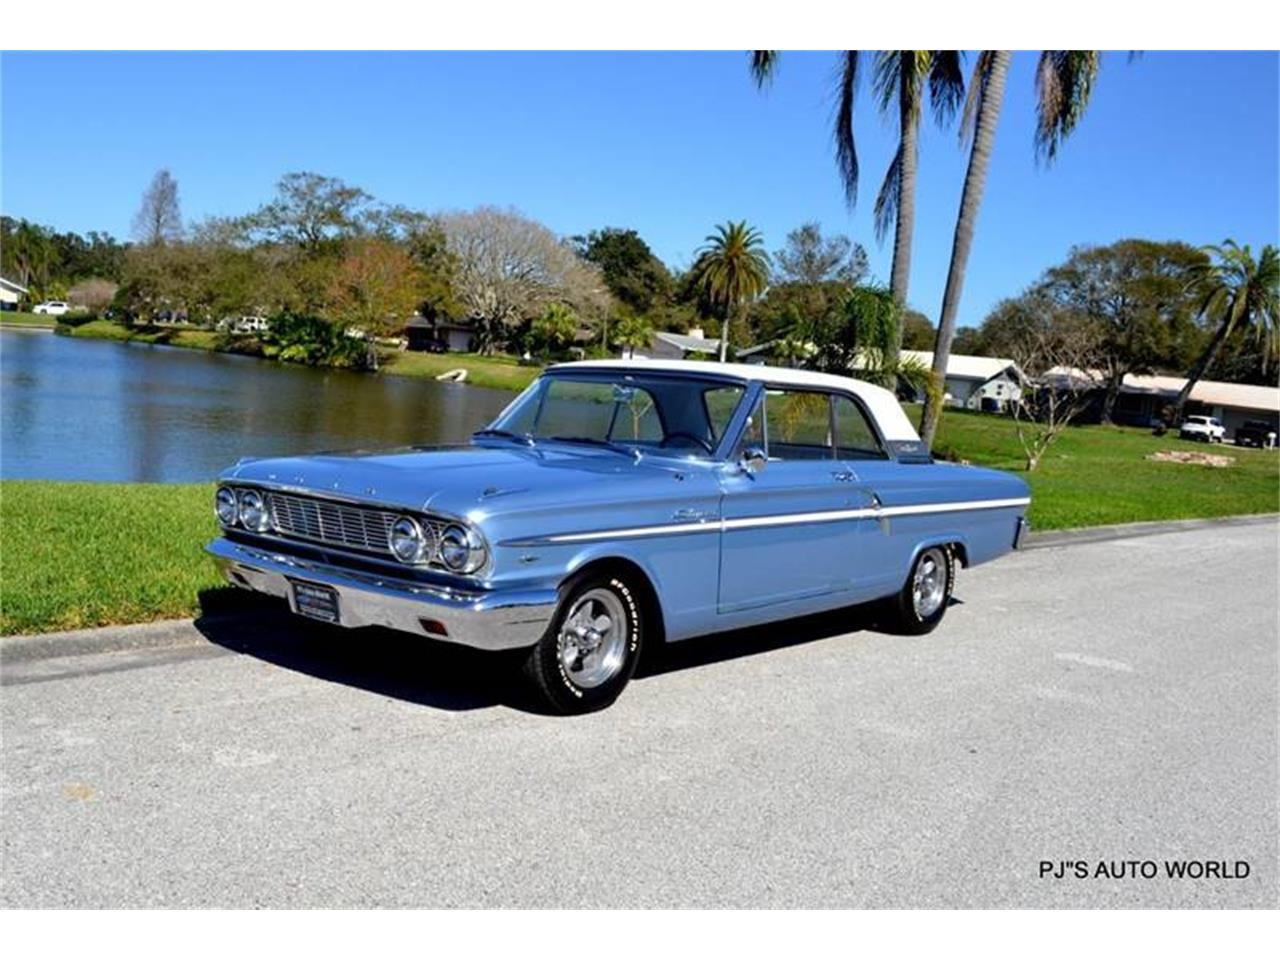 For Sale: 1964 Ford Fairlane in Clearwater, Florida